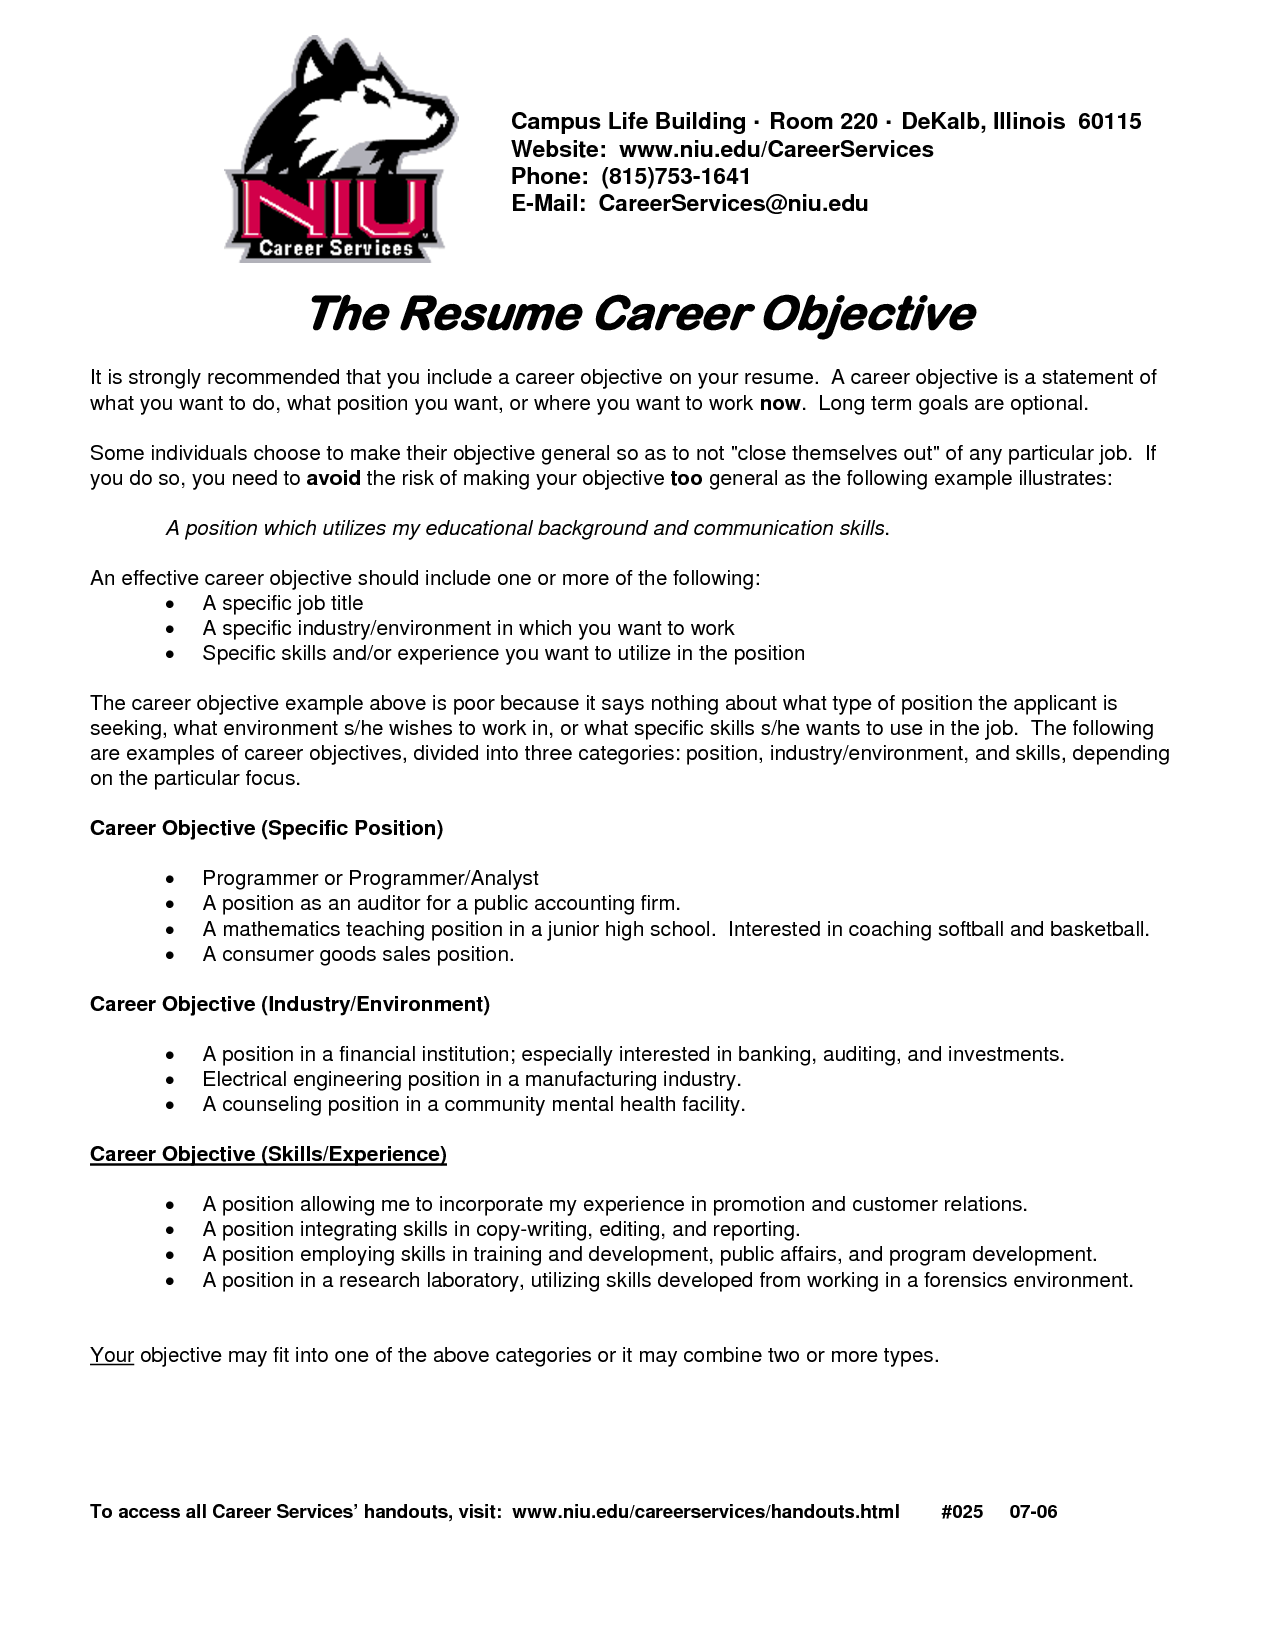 Objectives Of Resume Matchboardco - What to put as objective on resume